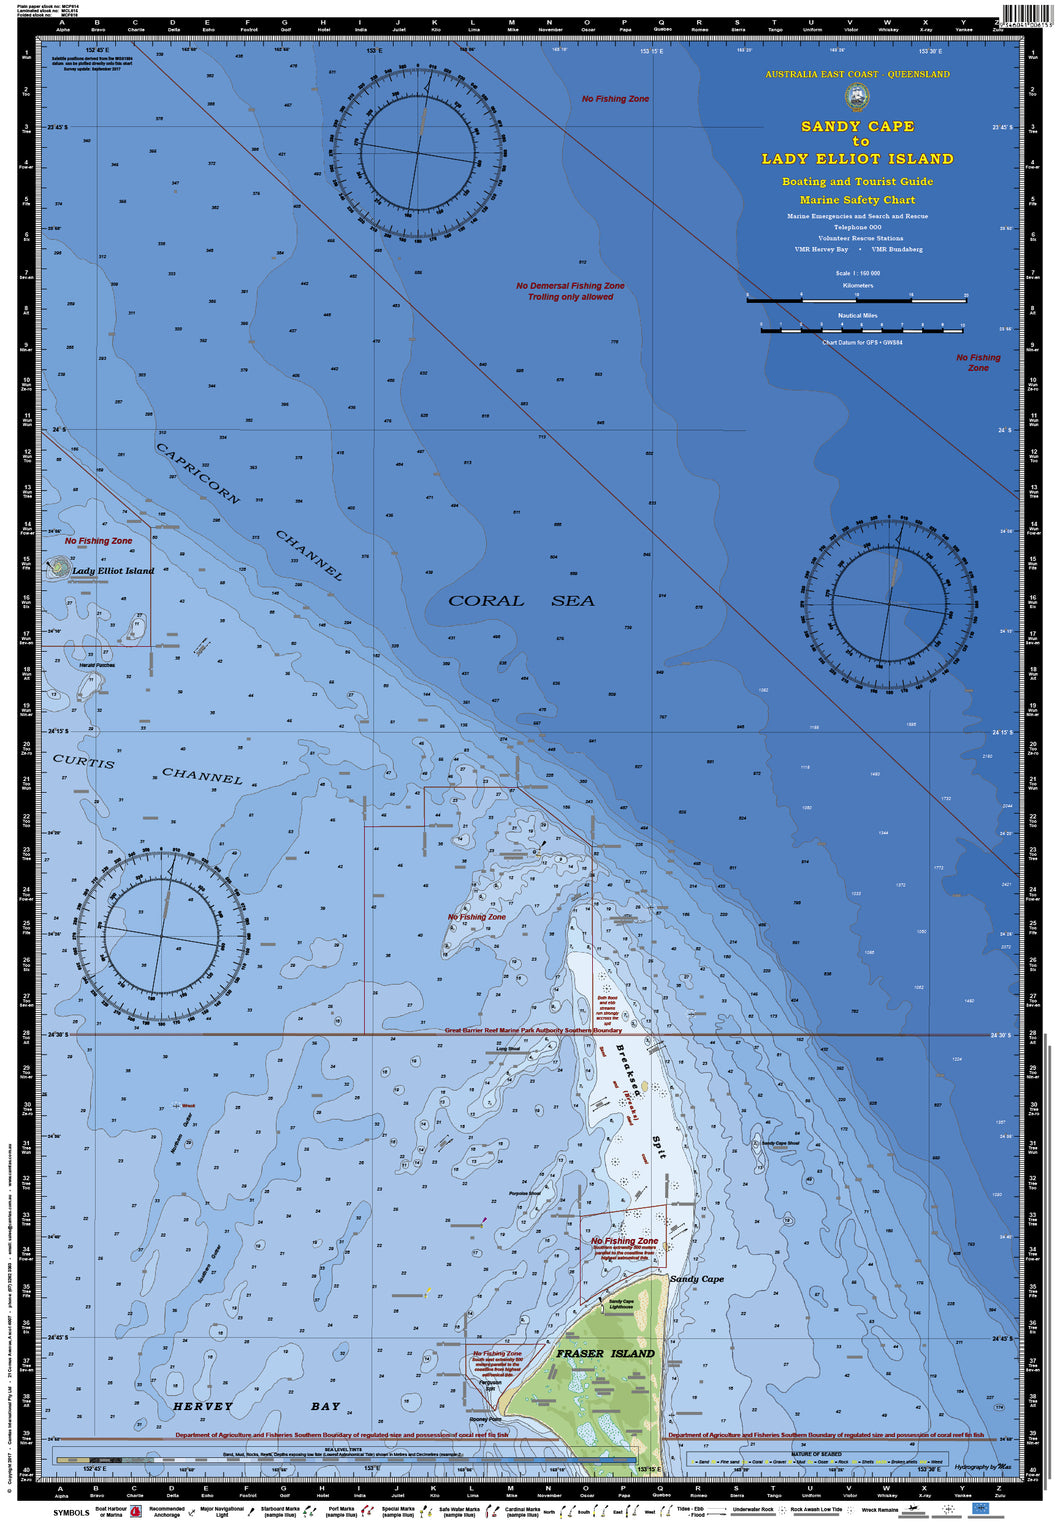 QLD Boating, Fishing, Camtas Marine Safety Chart - SANDY CAPE to LADY ELLIOT ISLAND / MC614